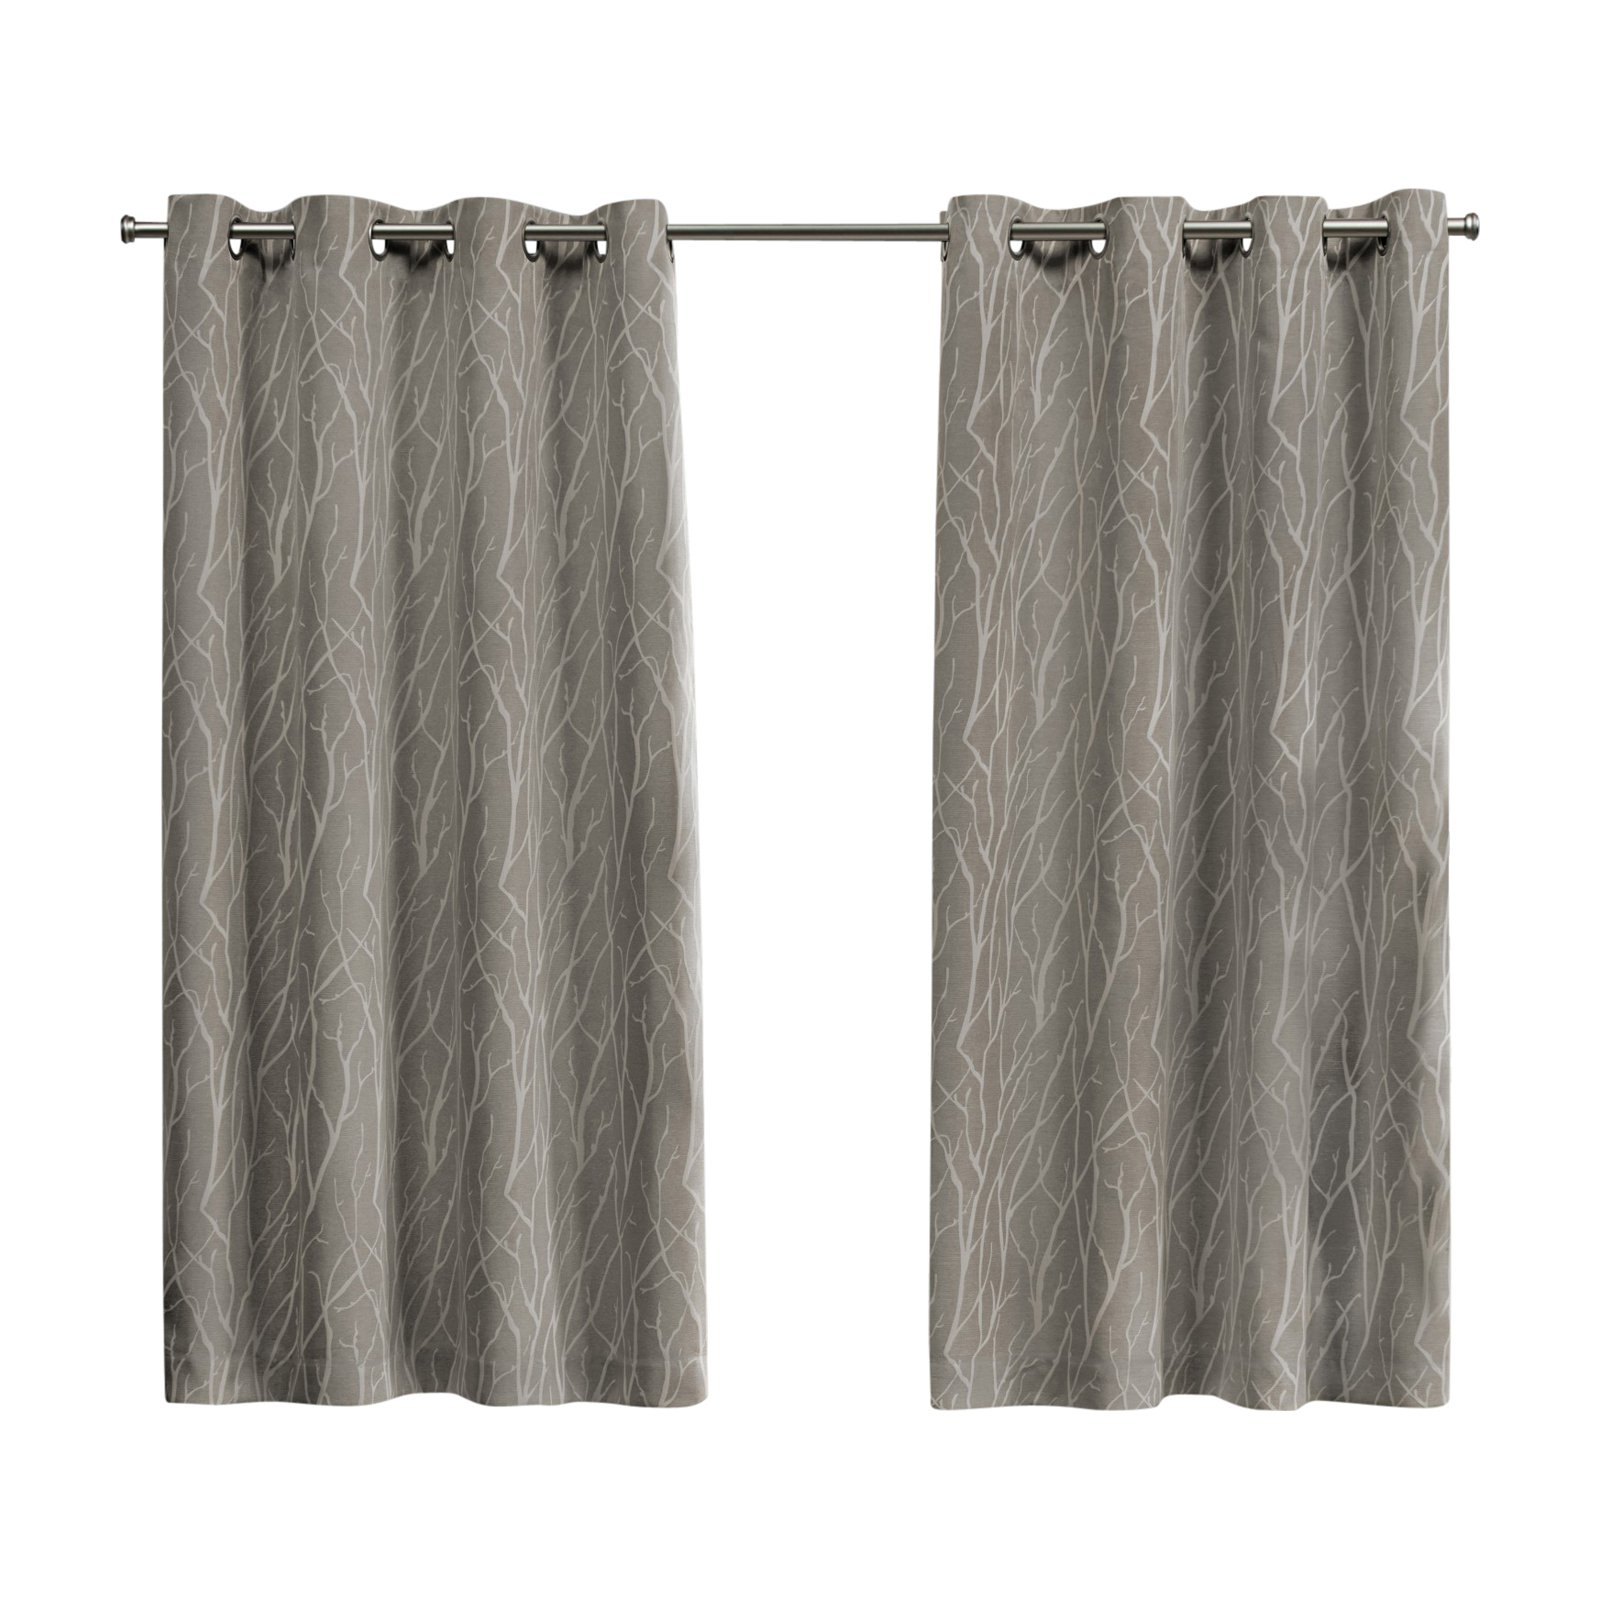 Widely Used Forest Hill Woven Blackout Grommet Top Curtain Panel Pairs Inside Exclusive Home Forest Hill Blackout Grommet Curtain Panel (View 10 of 20)